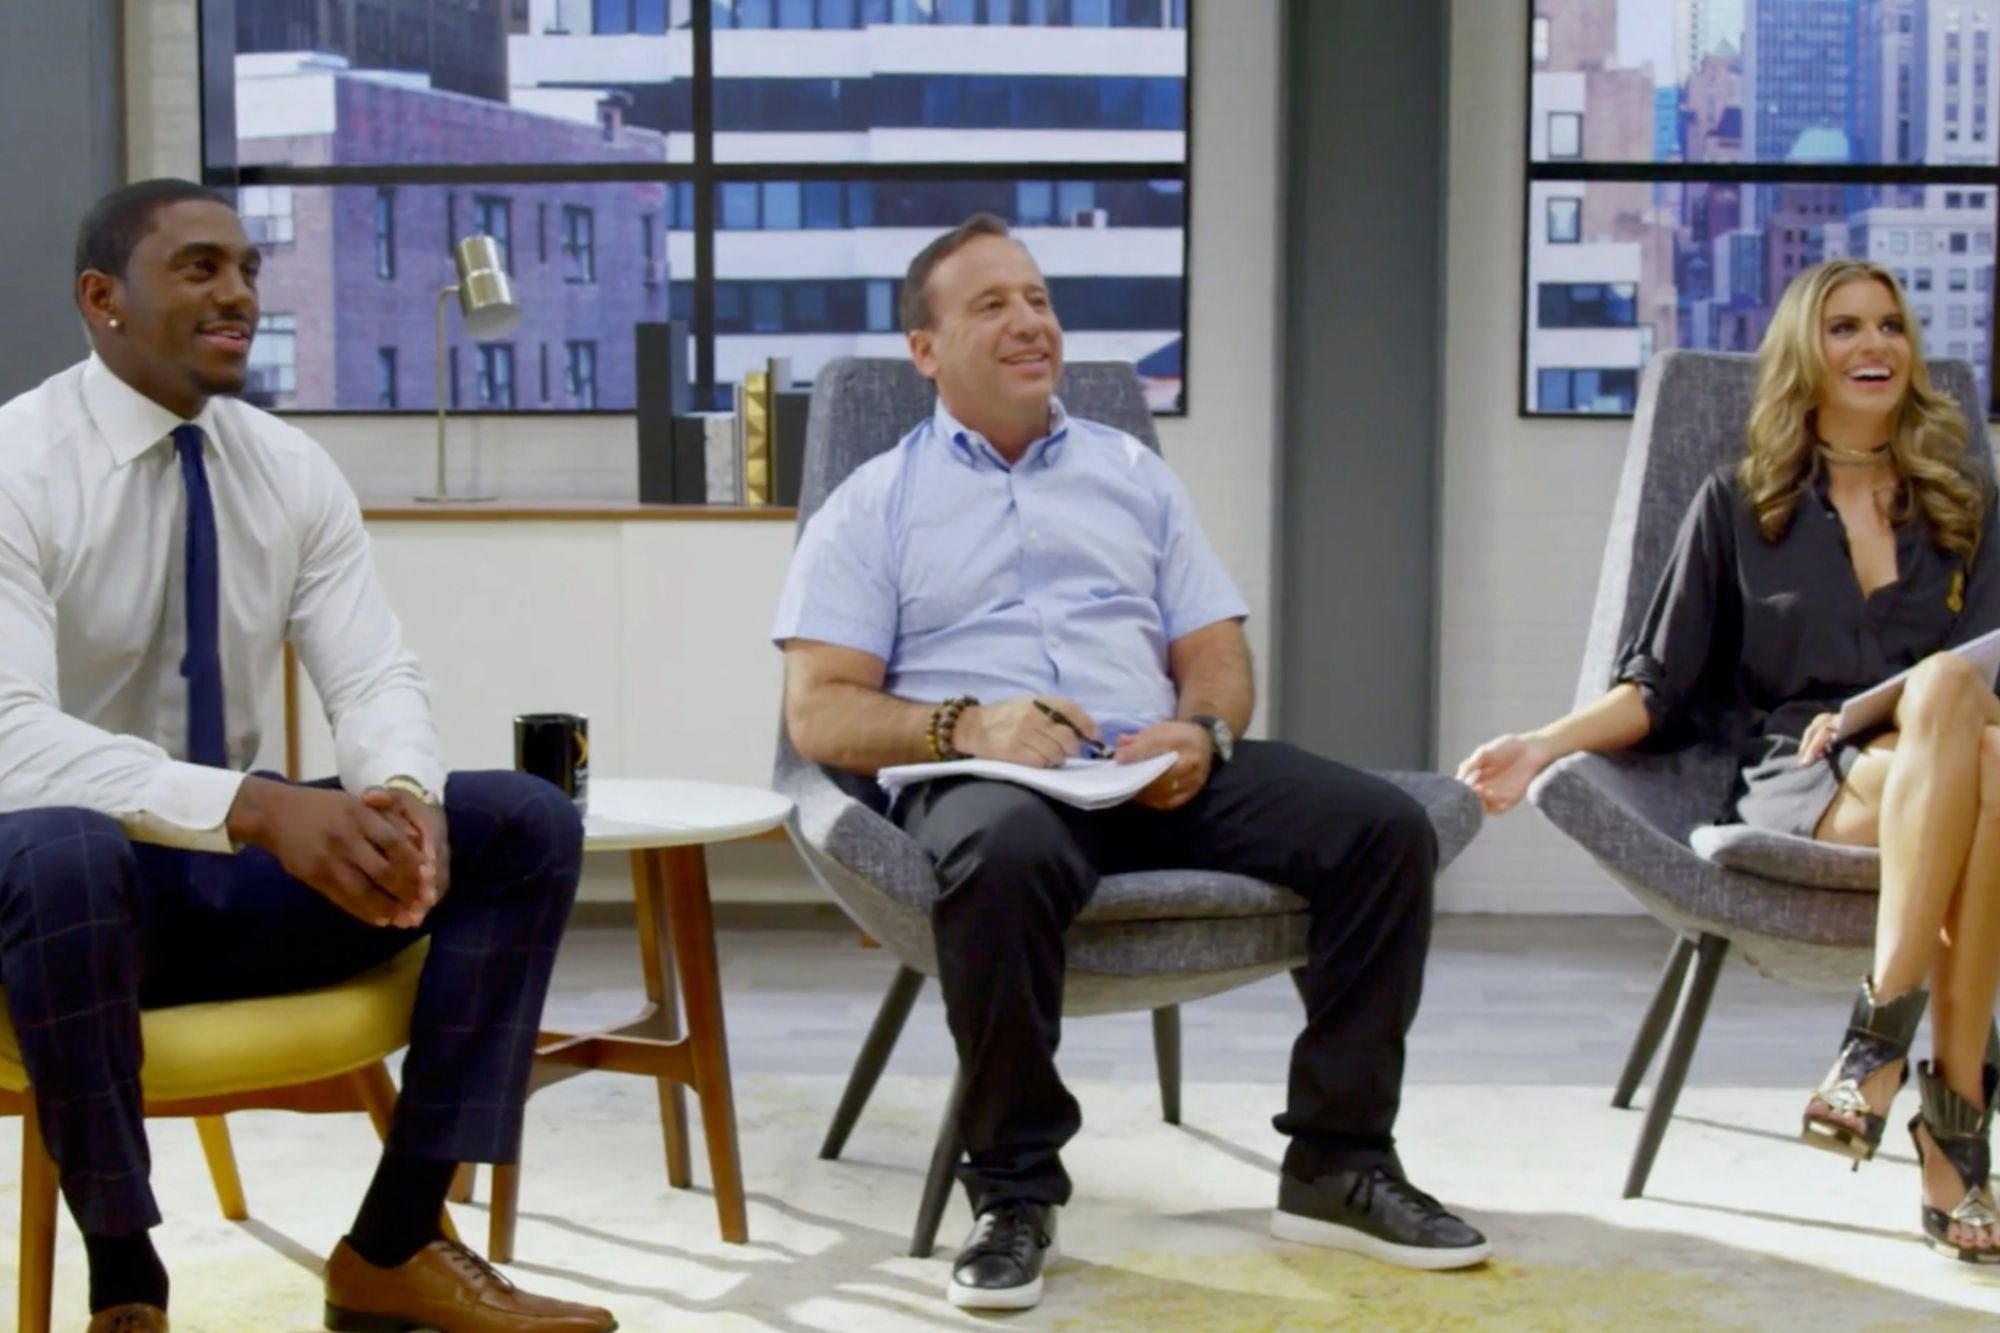 Entrepreneur Elevator Pitch Season 2 Ep. 12: 'That Is the Best Pitch I've Seen'